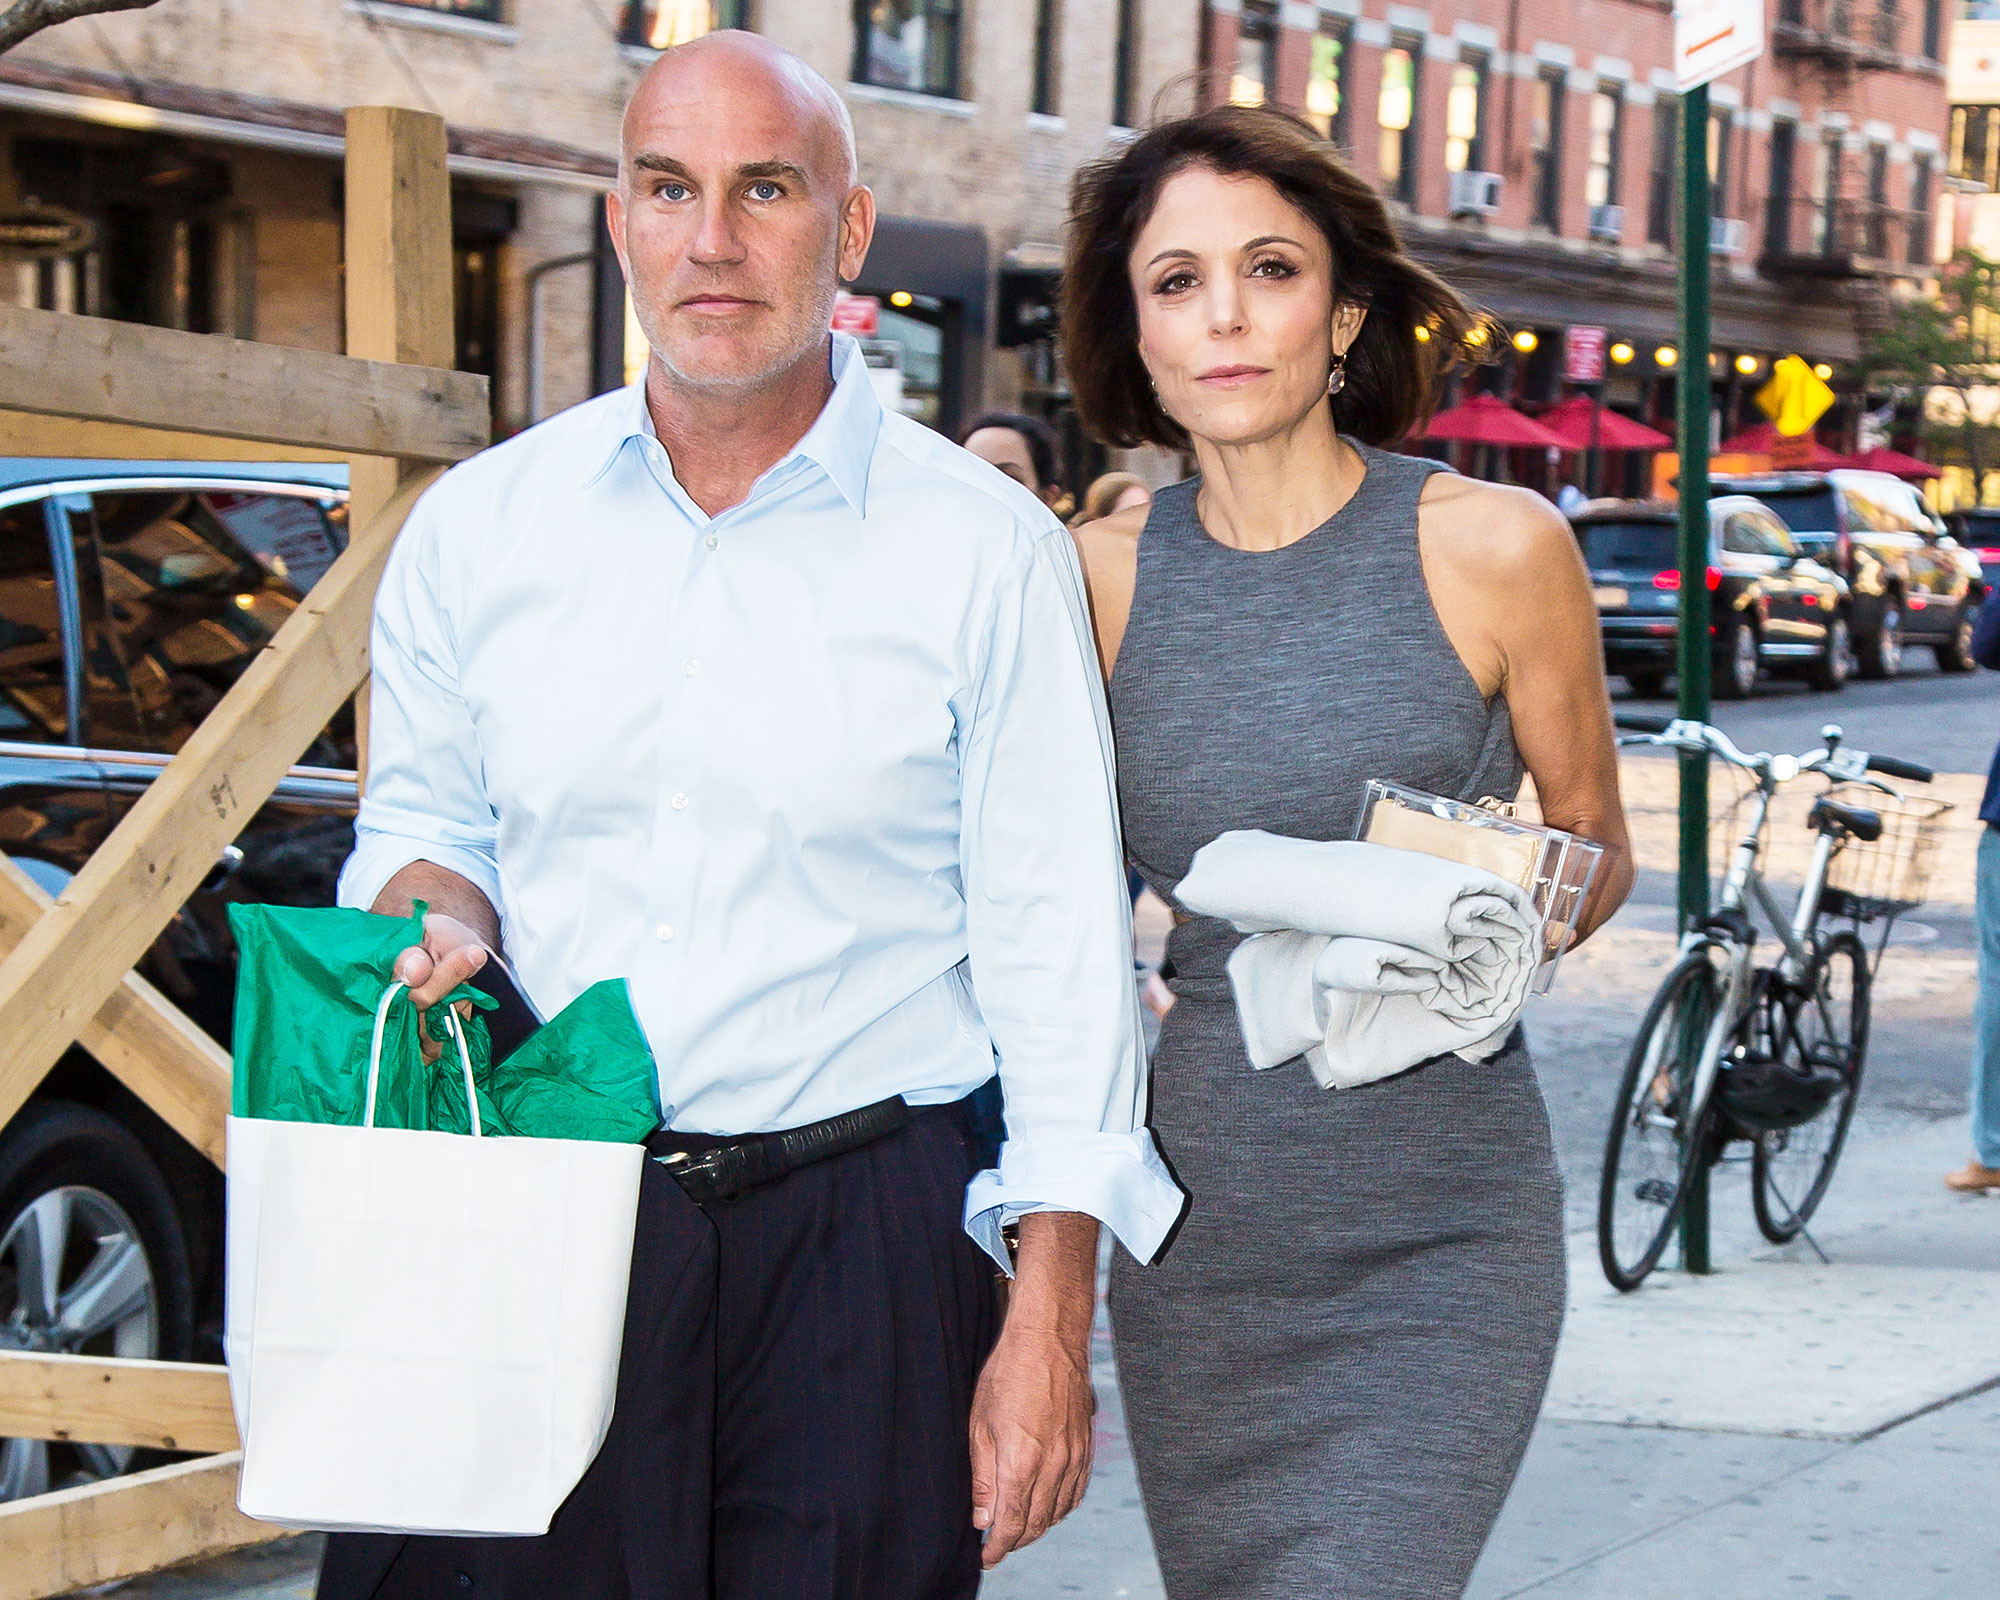 Bethenny Frankel Details Dennis Shields' 'Very Complicated' Proposal Before His Death